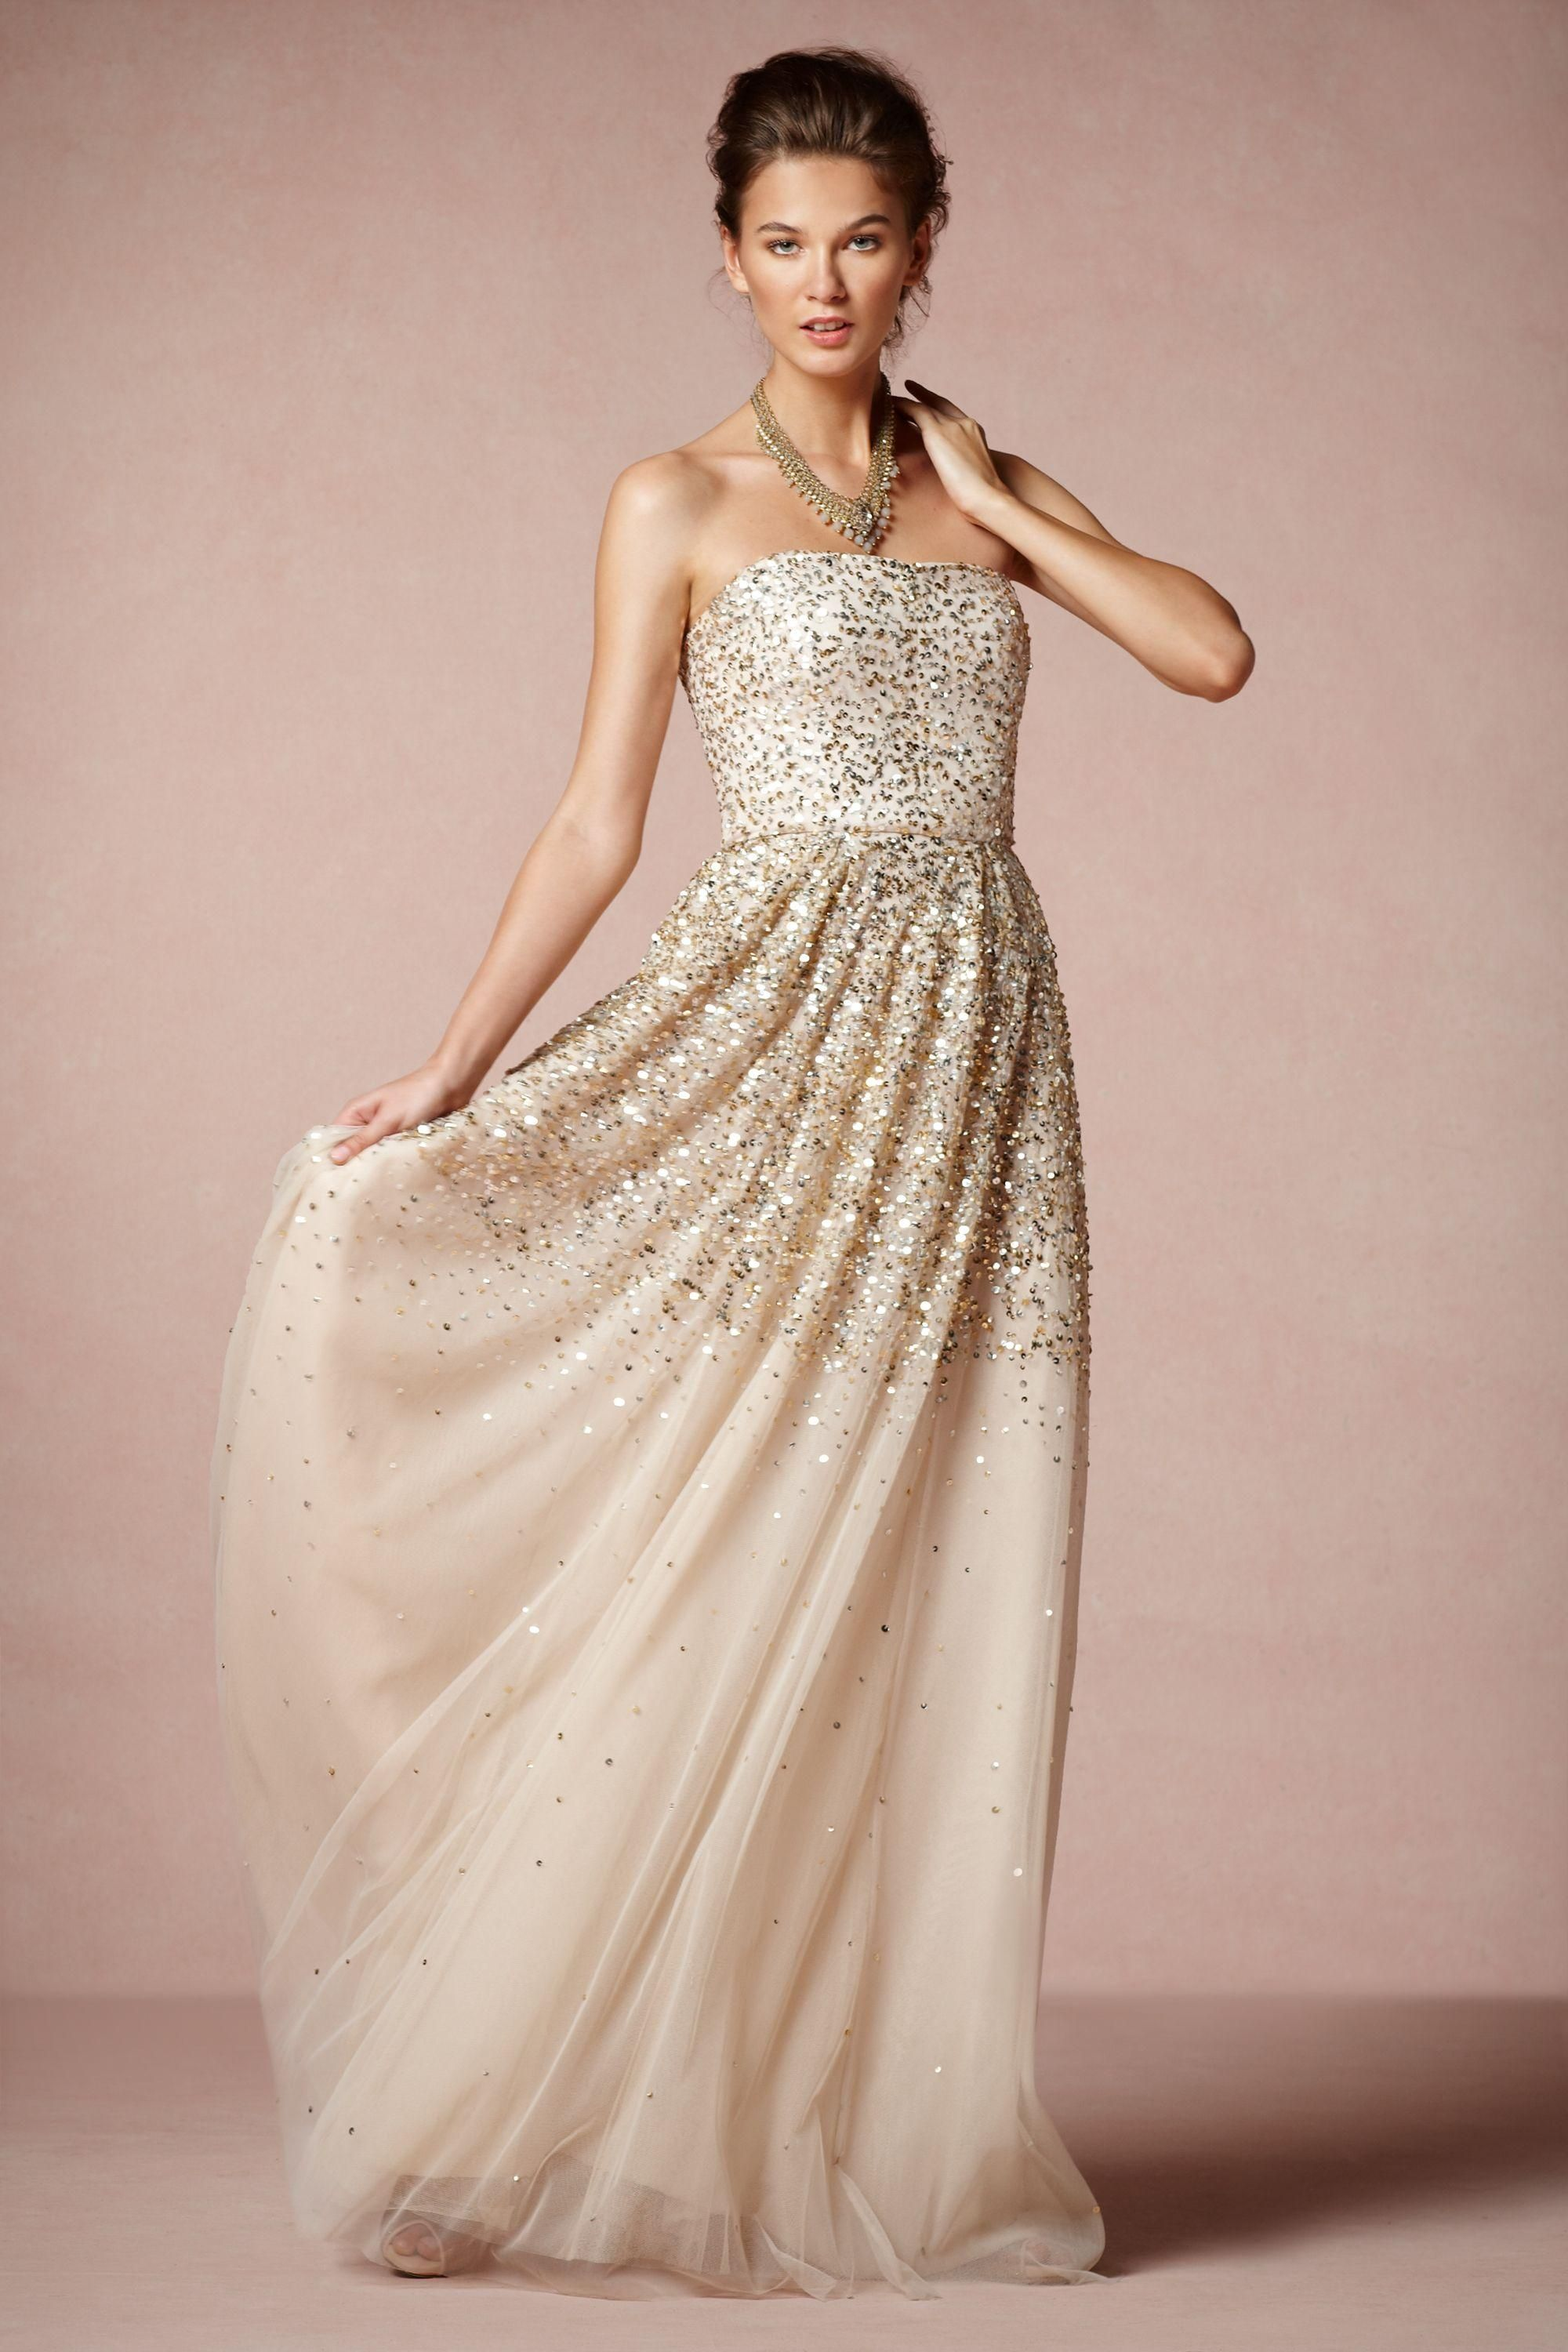 bhldn.com | Elegant, beauty... | Pinterest | Vestiditos, Vestidos de ...